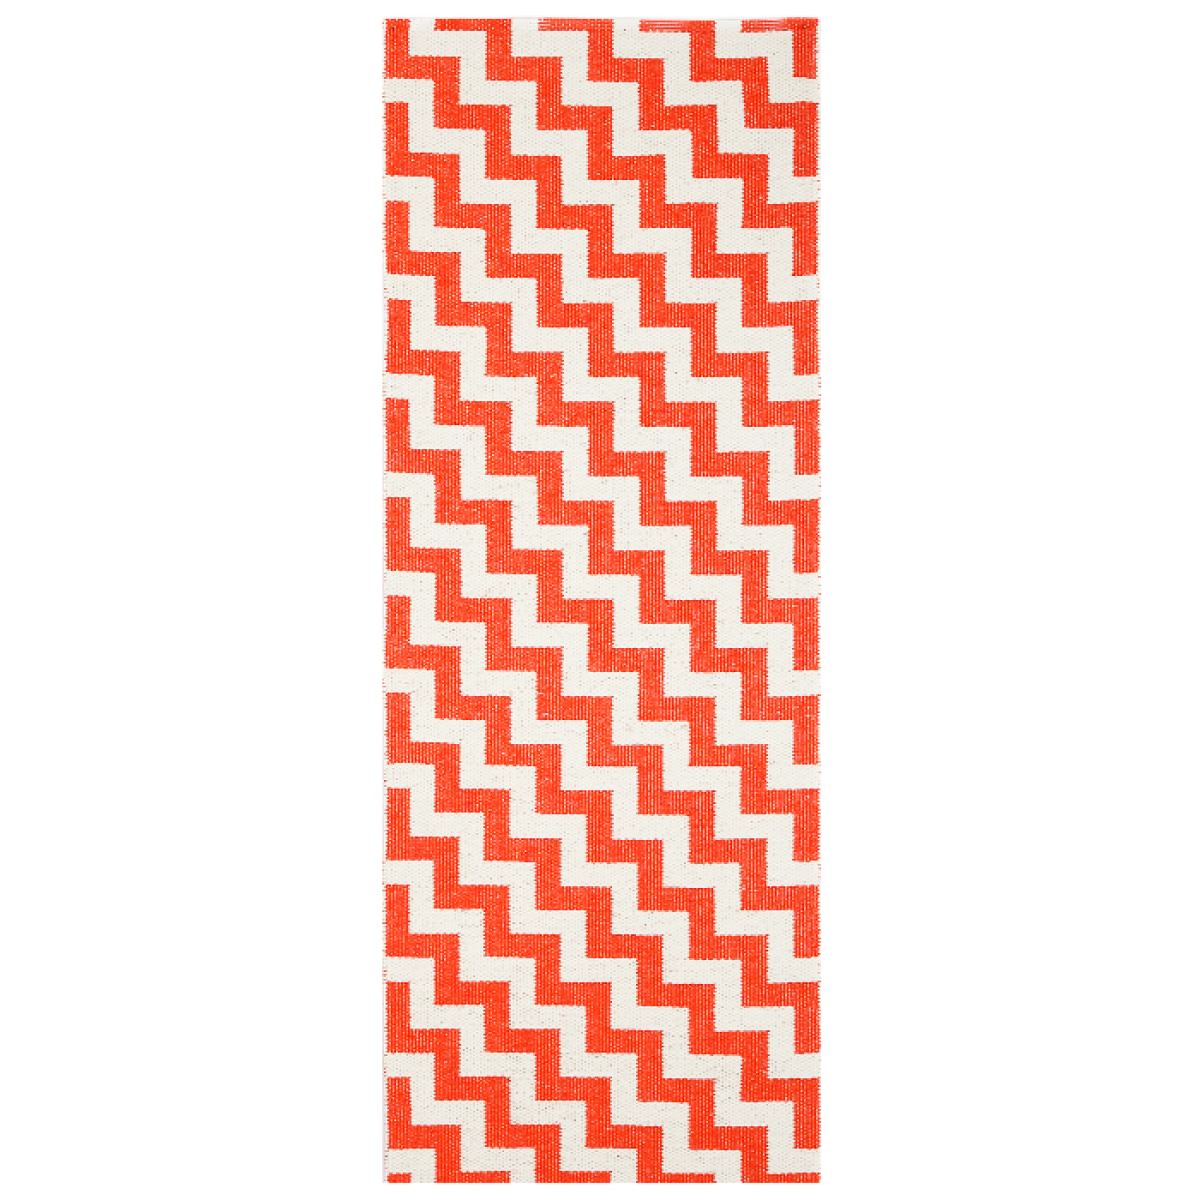 "Design Rug ""Gunnel"" (red) made of plastic